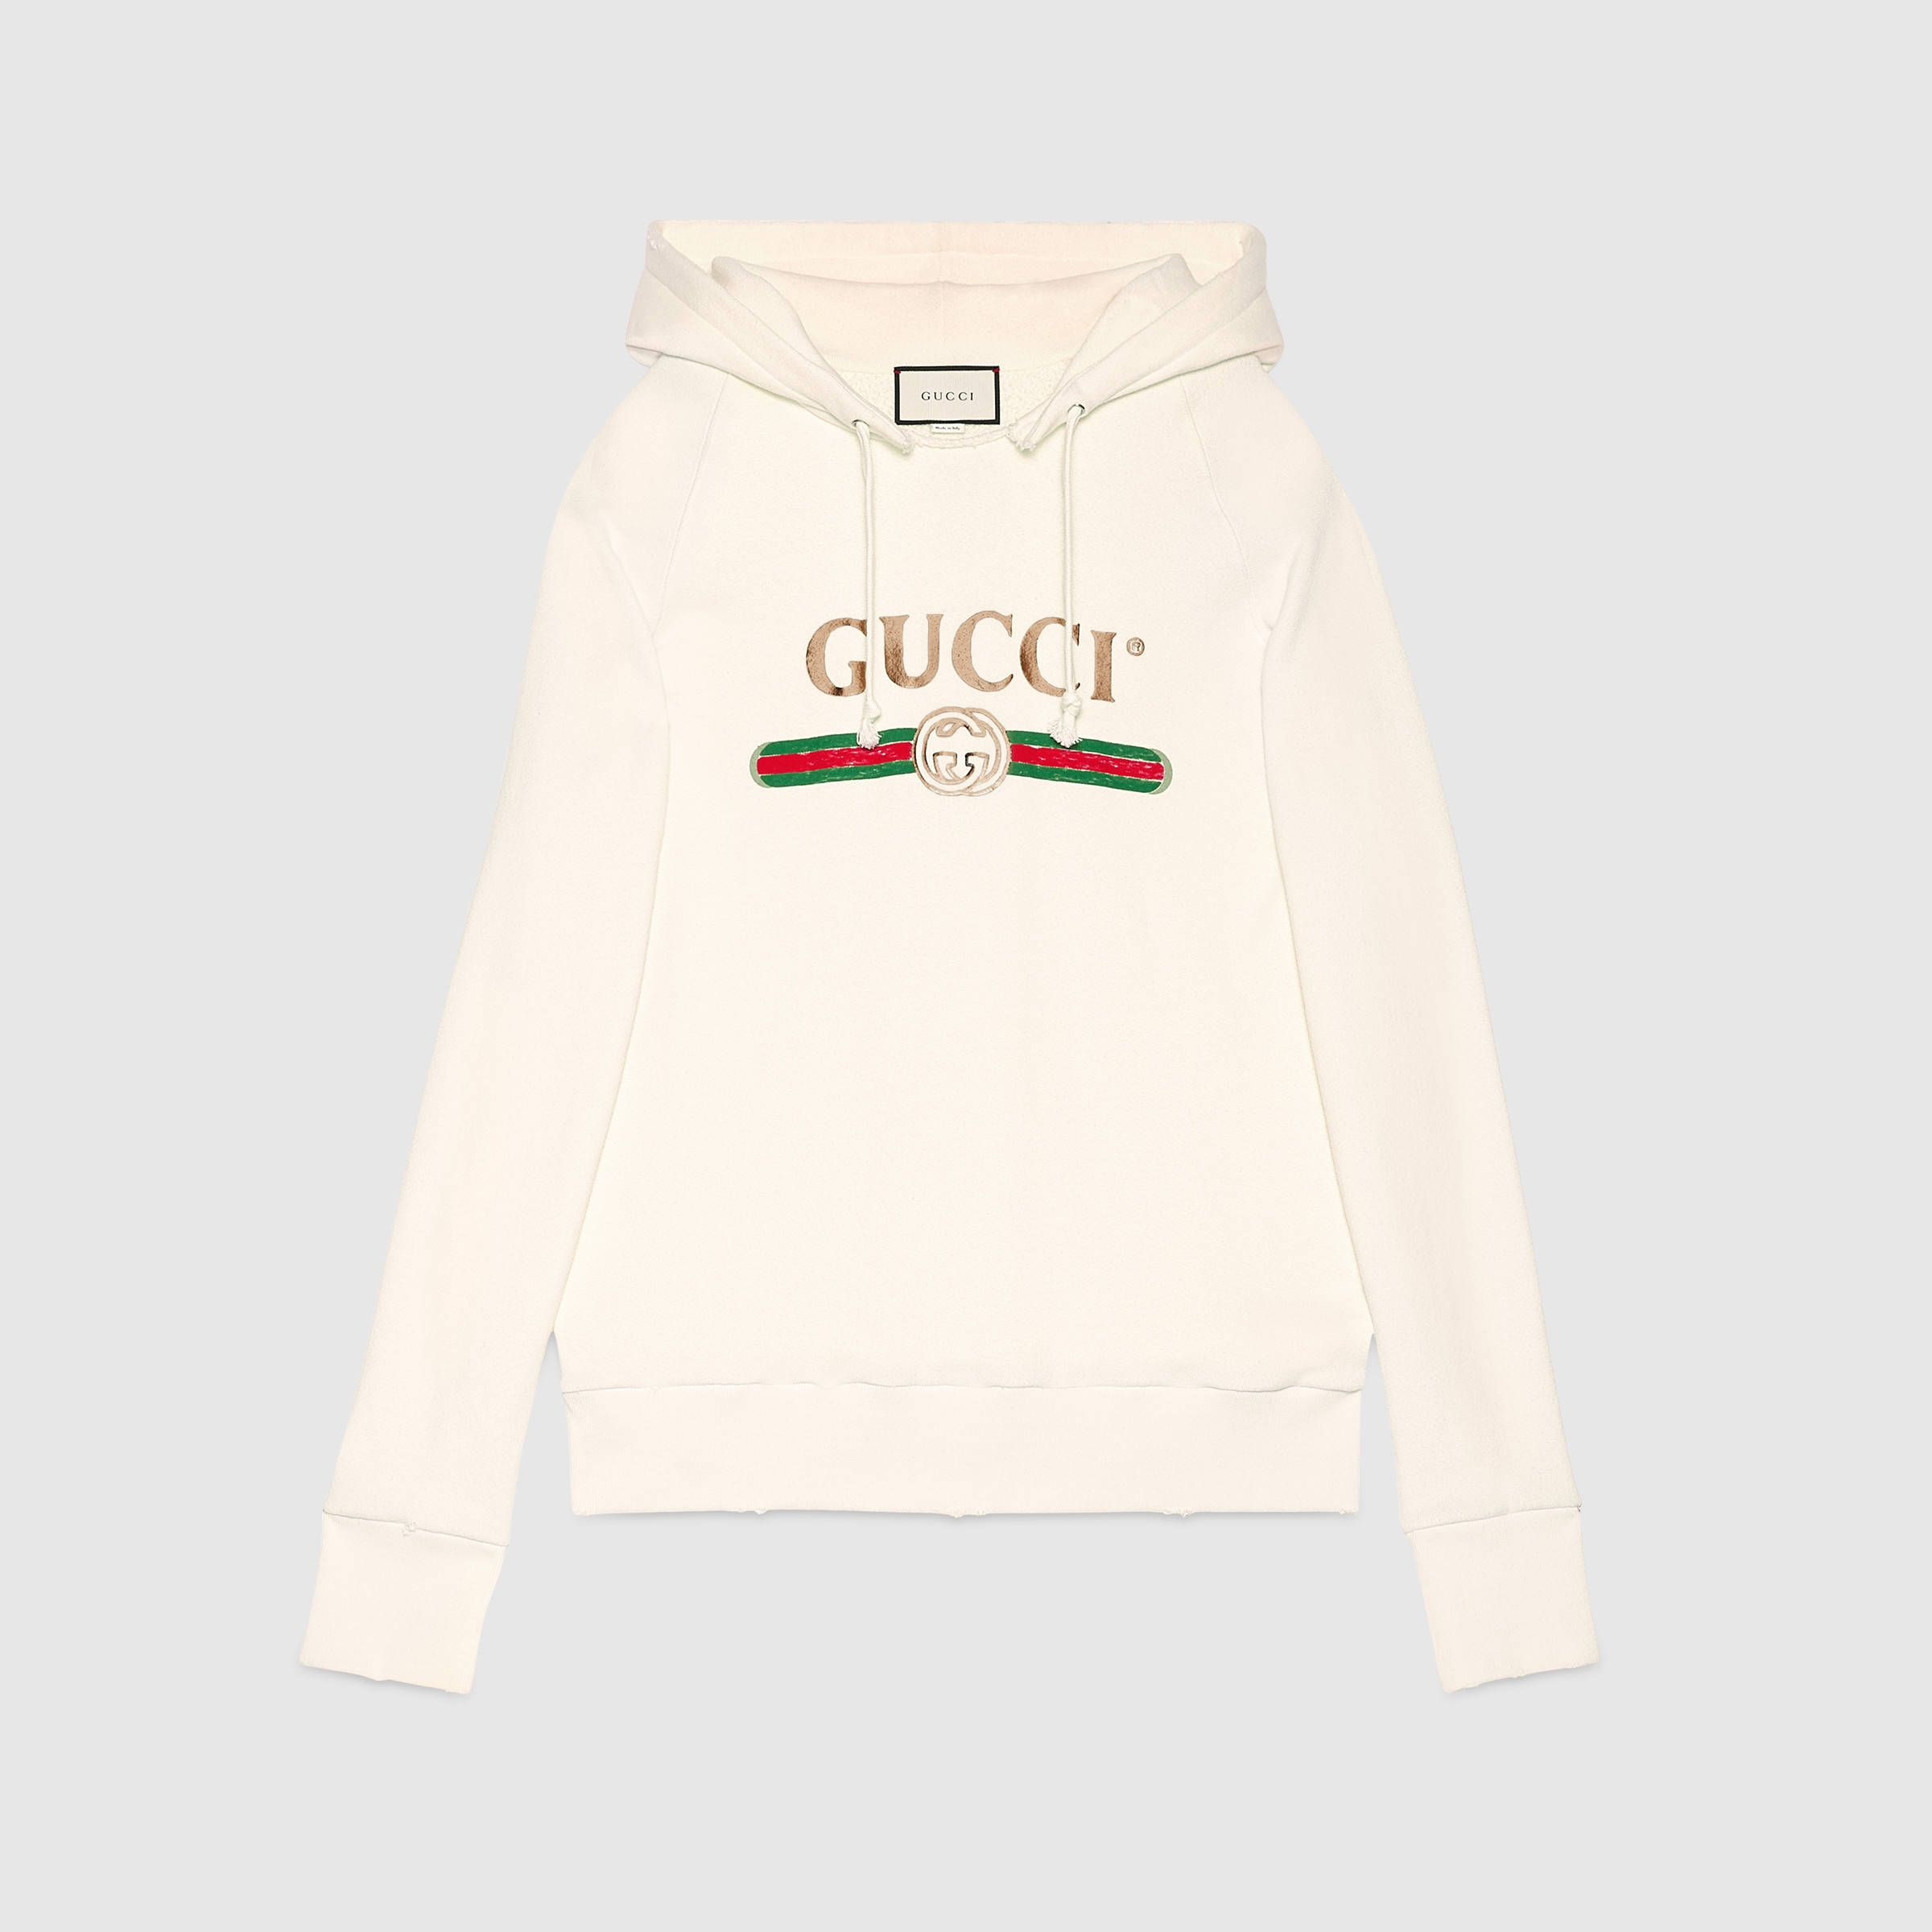 c363ff8d79ba Embroidered hooded sweatshirt - Gucci Women s Sweatshirts   T-shirts  457931X5N719234